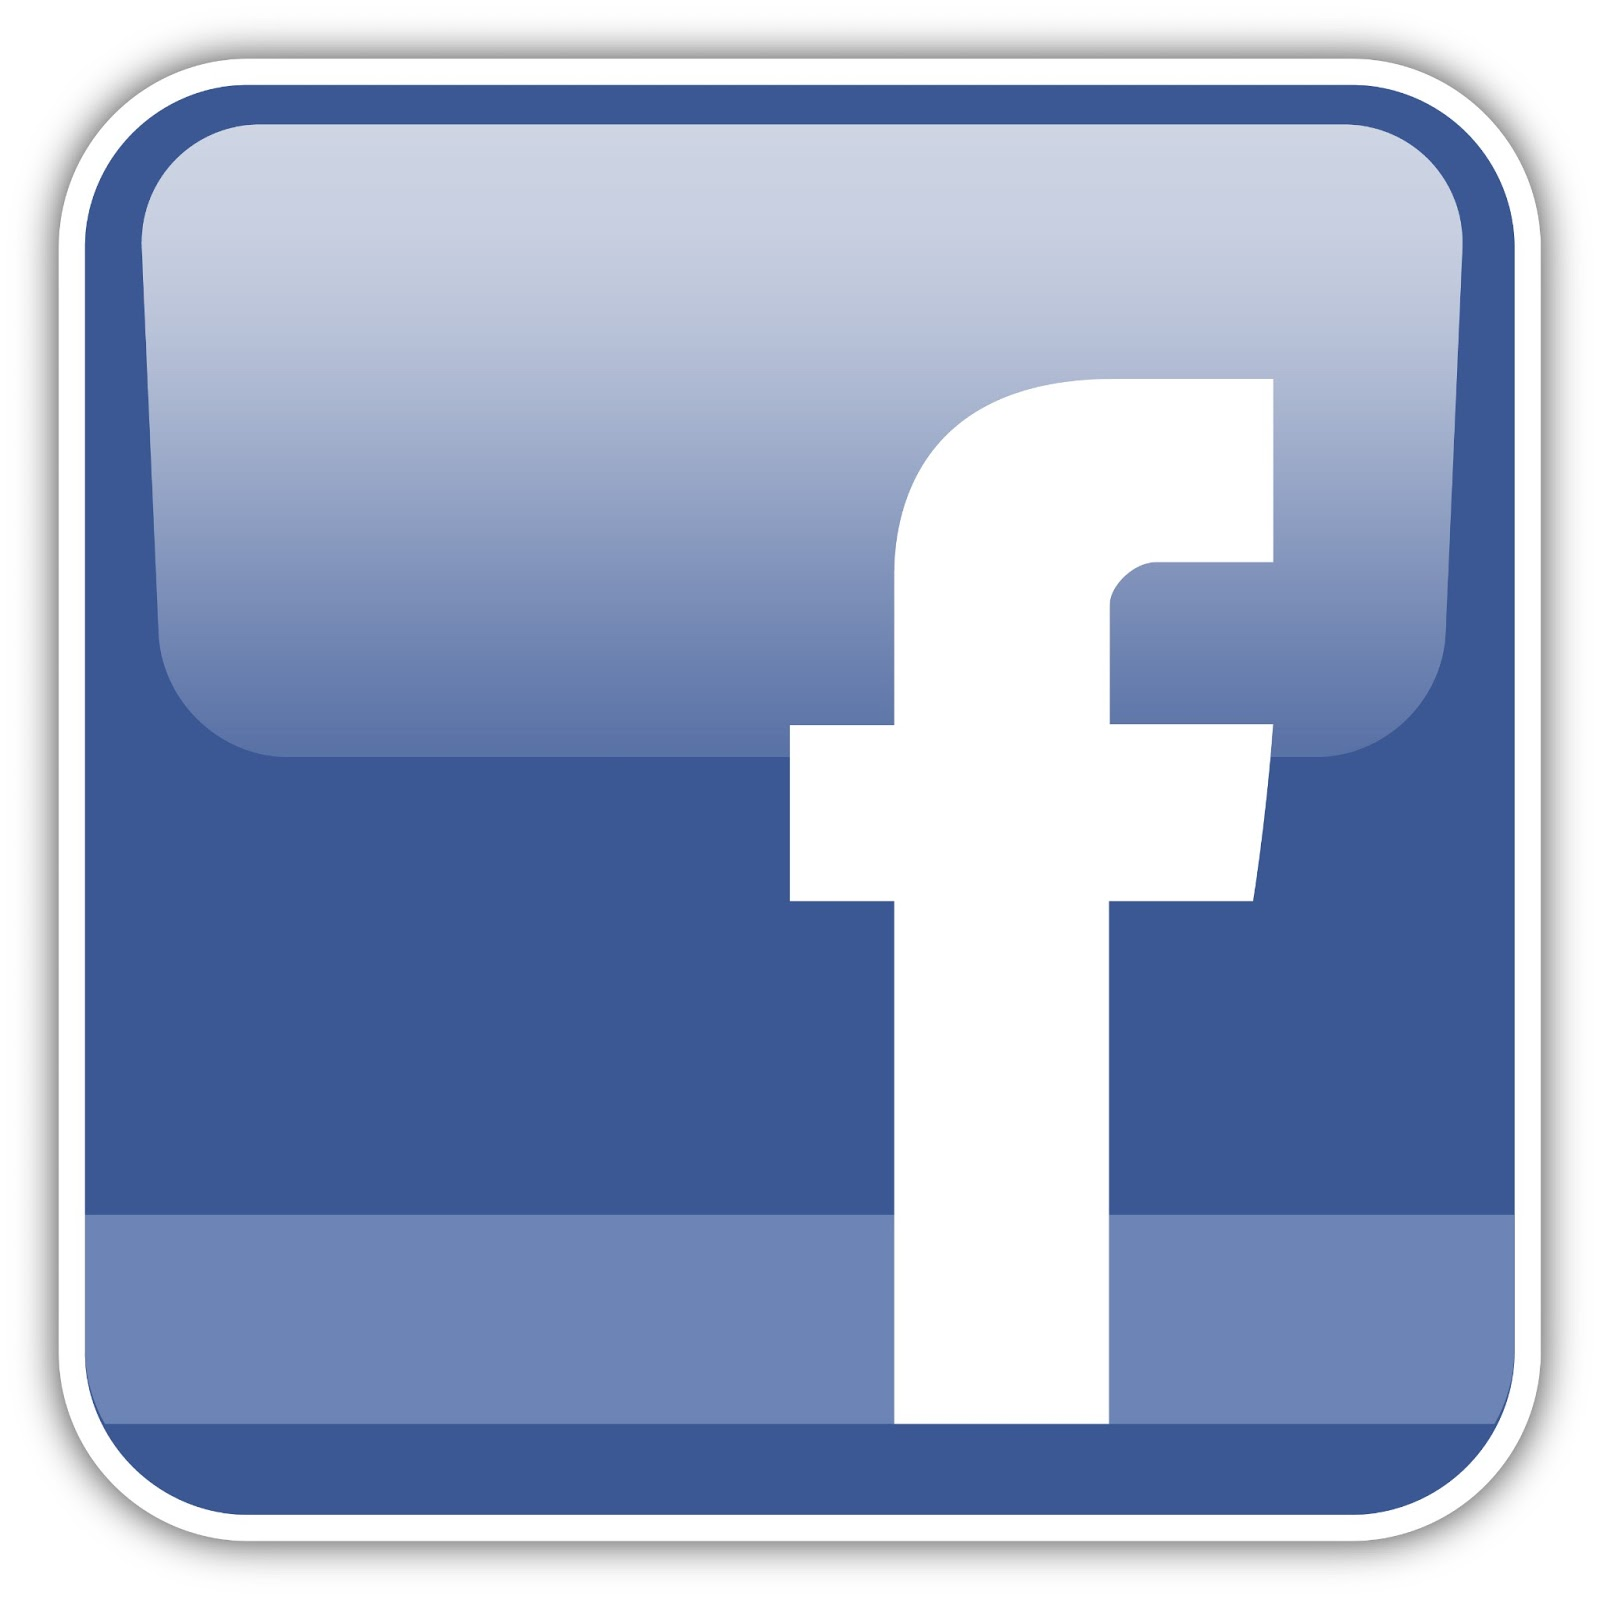 Facebook is an American online social media and social networking service company based in Menlo Park, California.